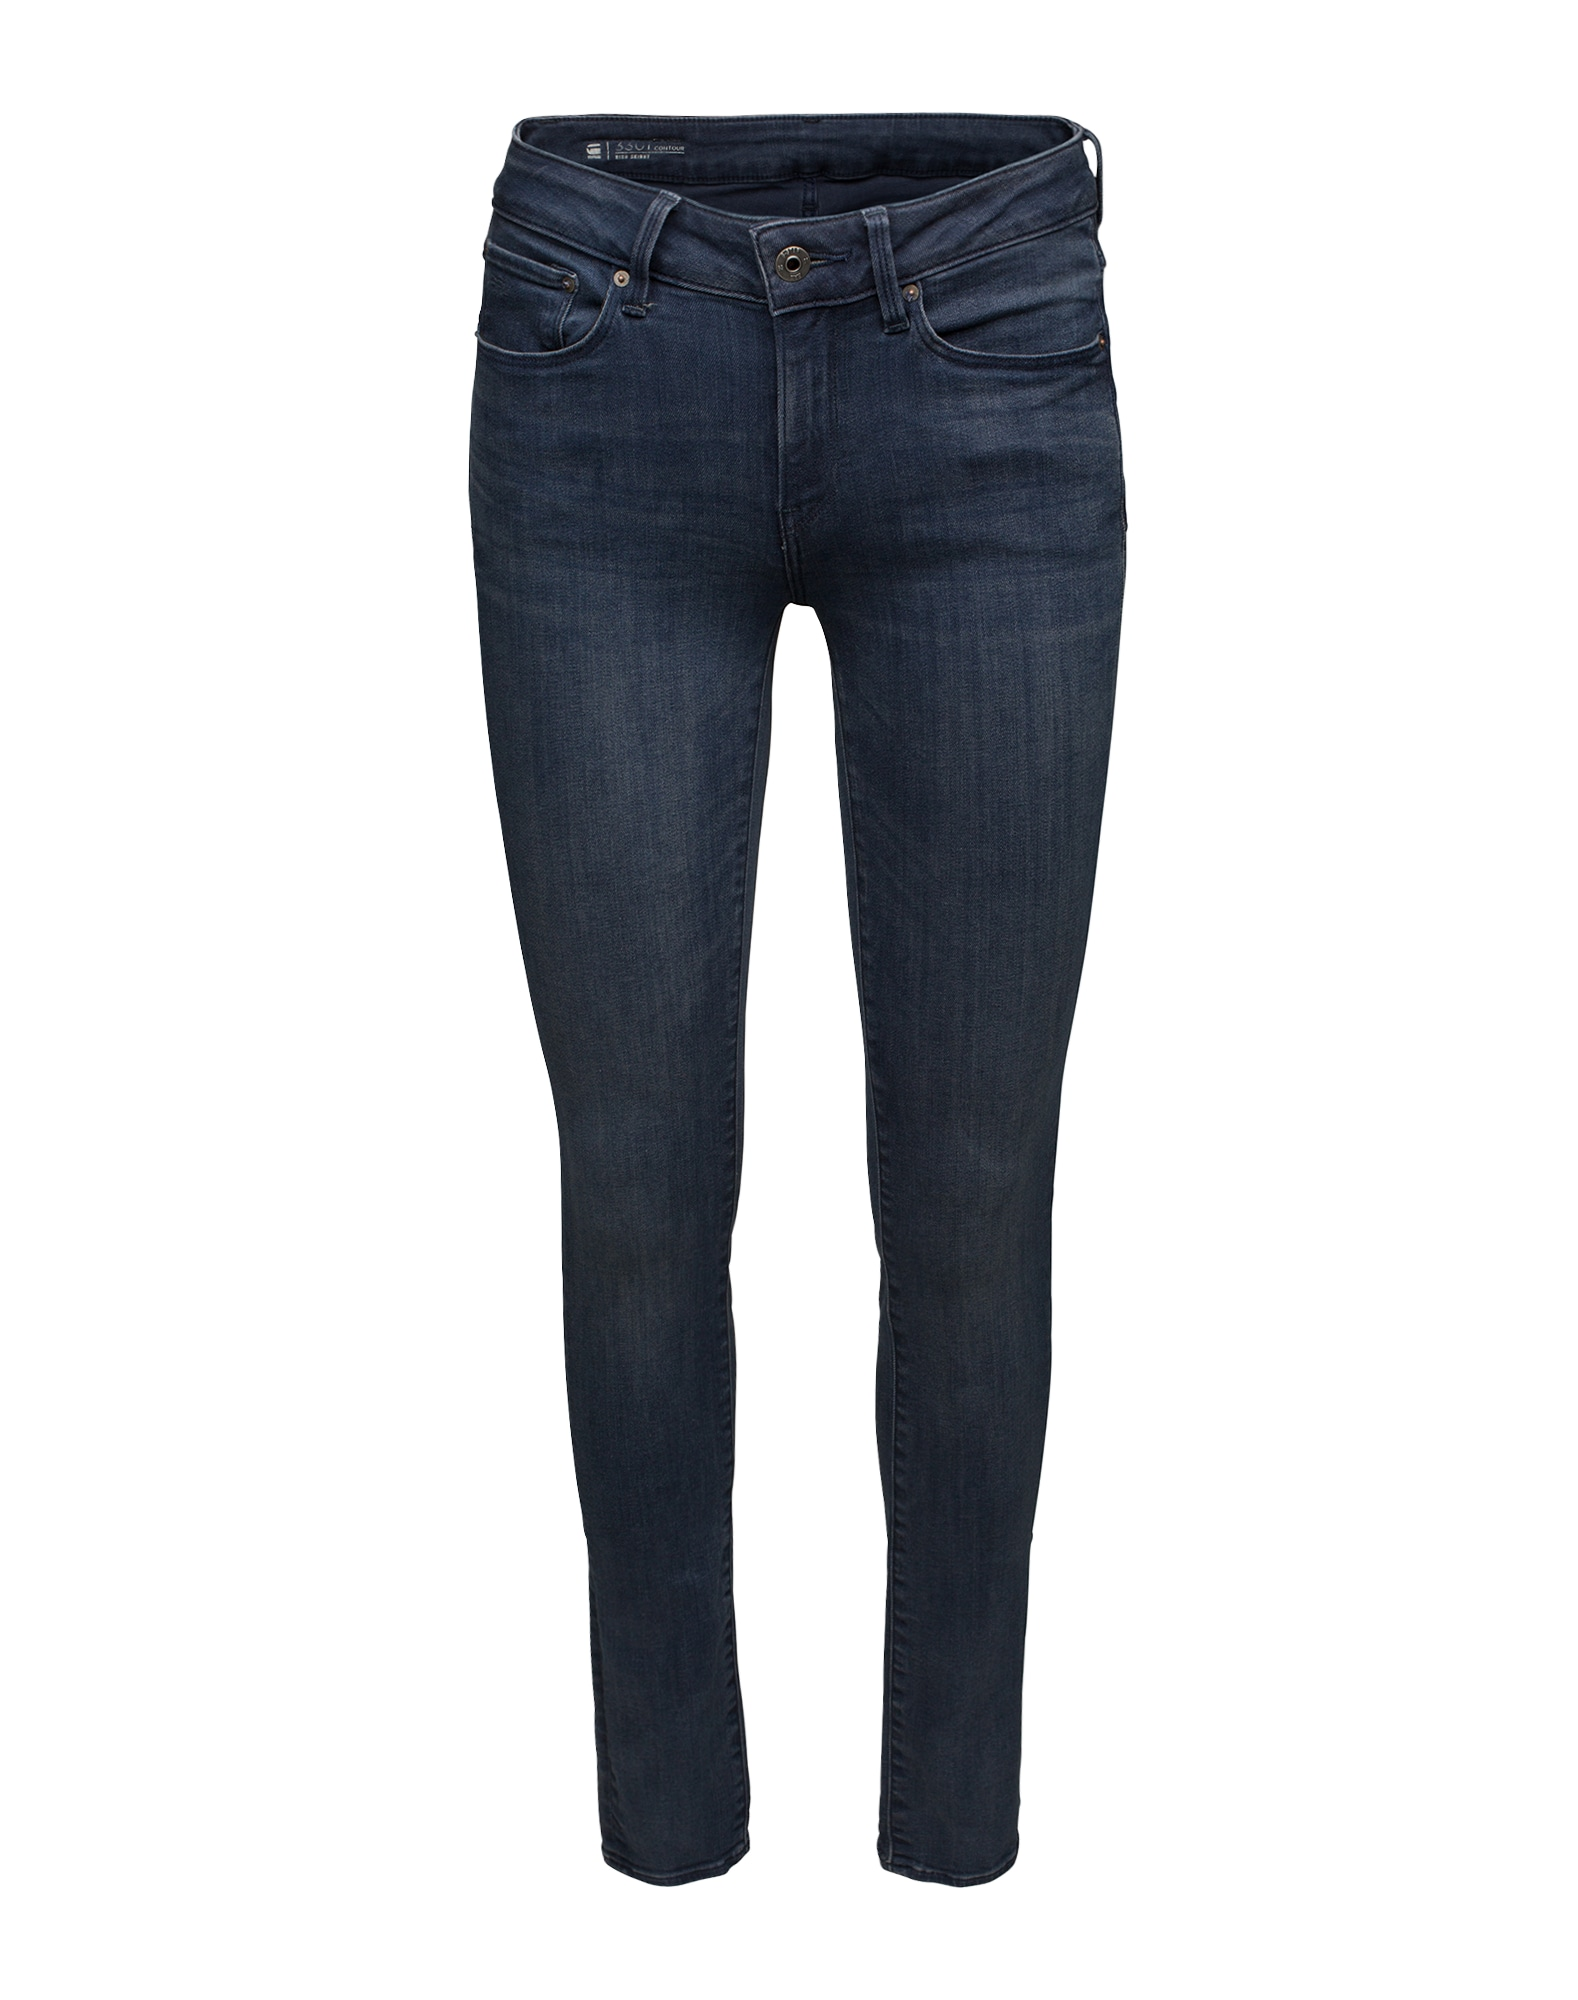 G-STAR RAW Dames Jeans 3301 donkerblauw